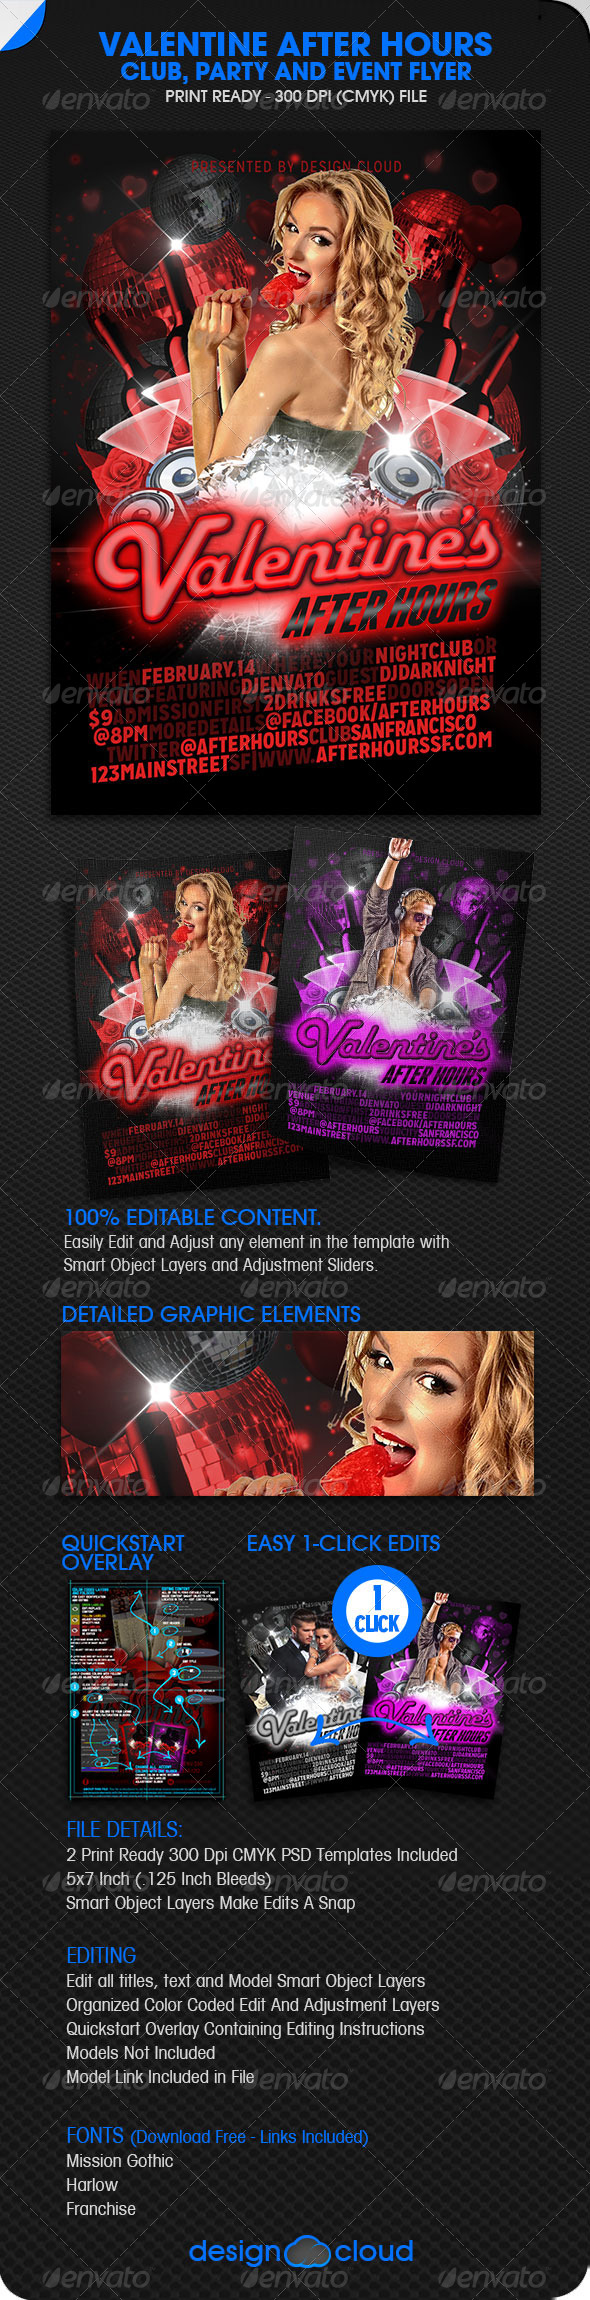 GraphicRiver Valentine After Hours Club Party and Event Flyer 6583059